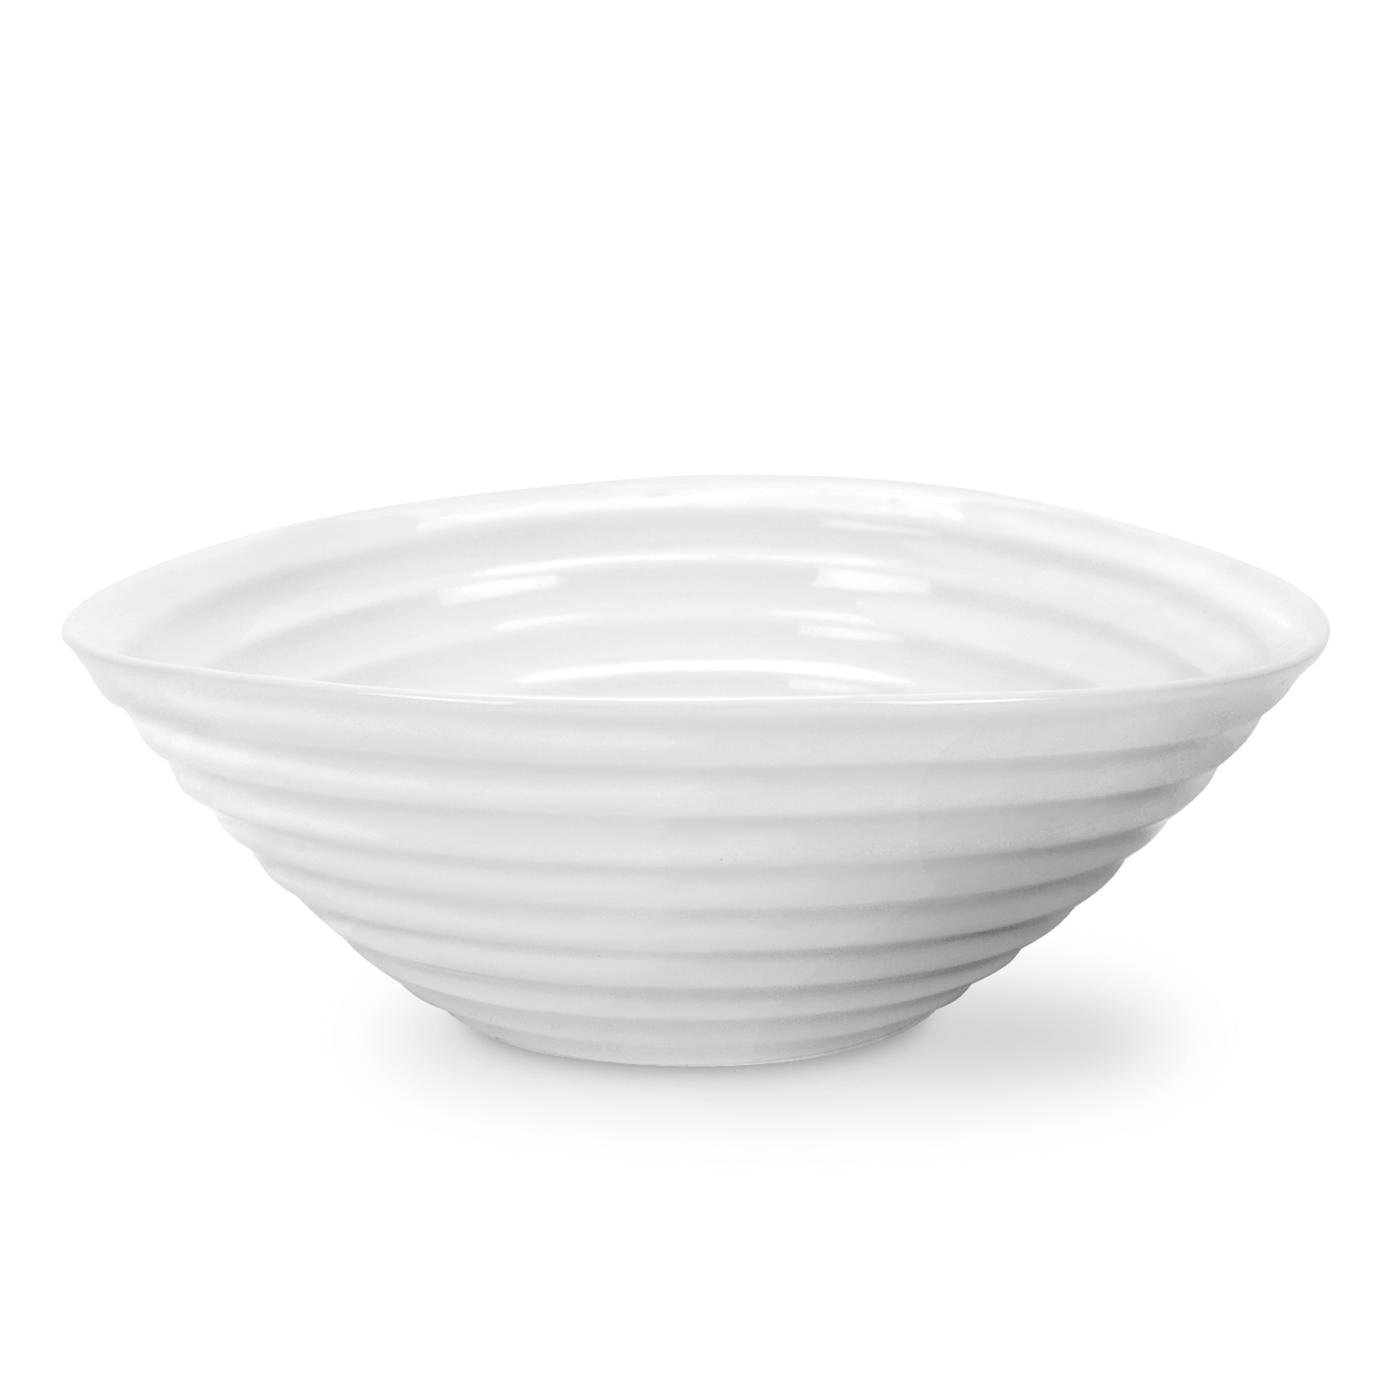 Portmeirion Sophie Conran White Cereal Bowl, 7.5'' Set of 4